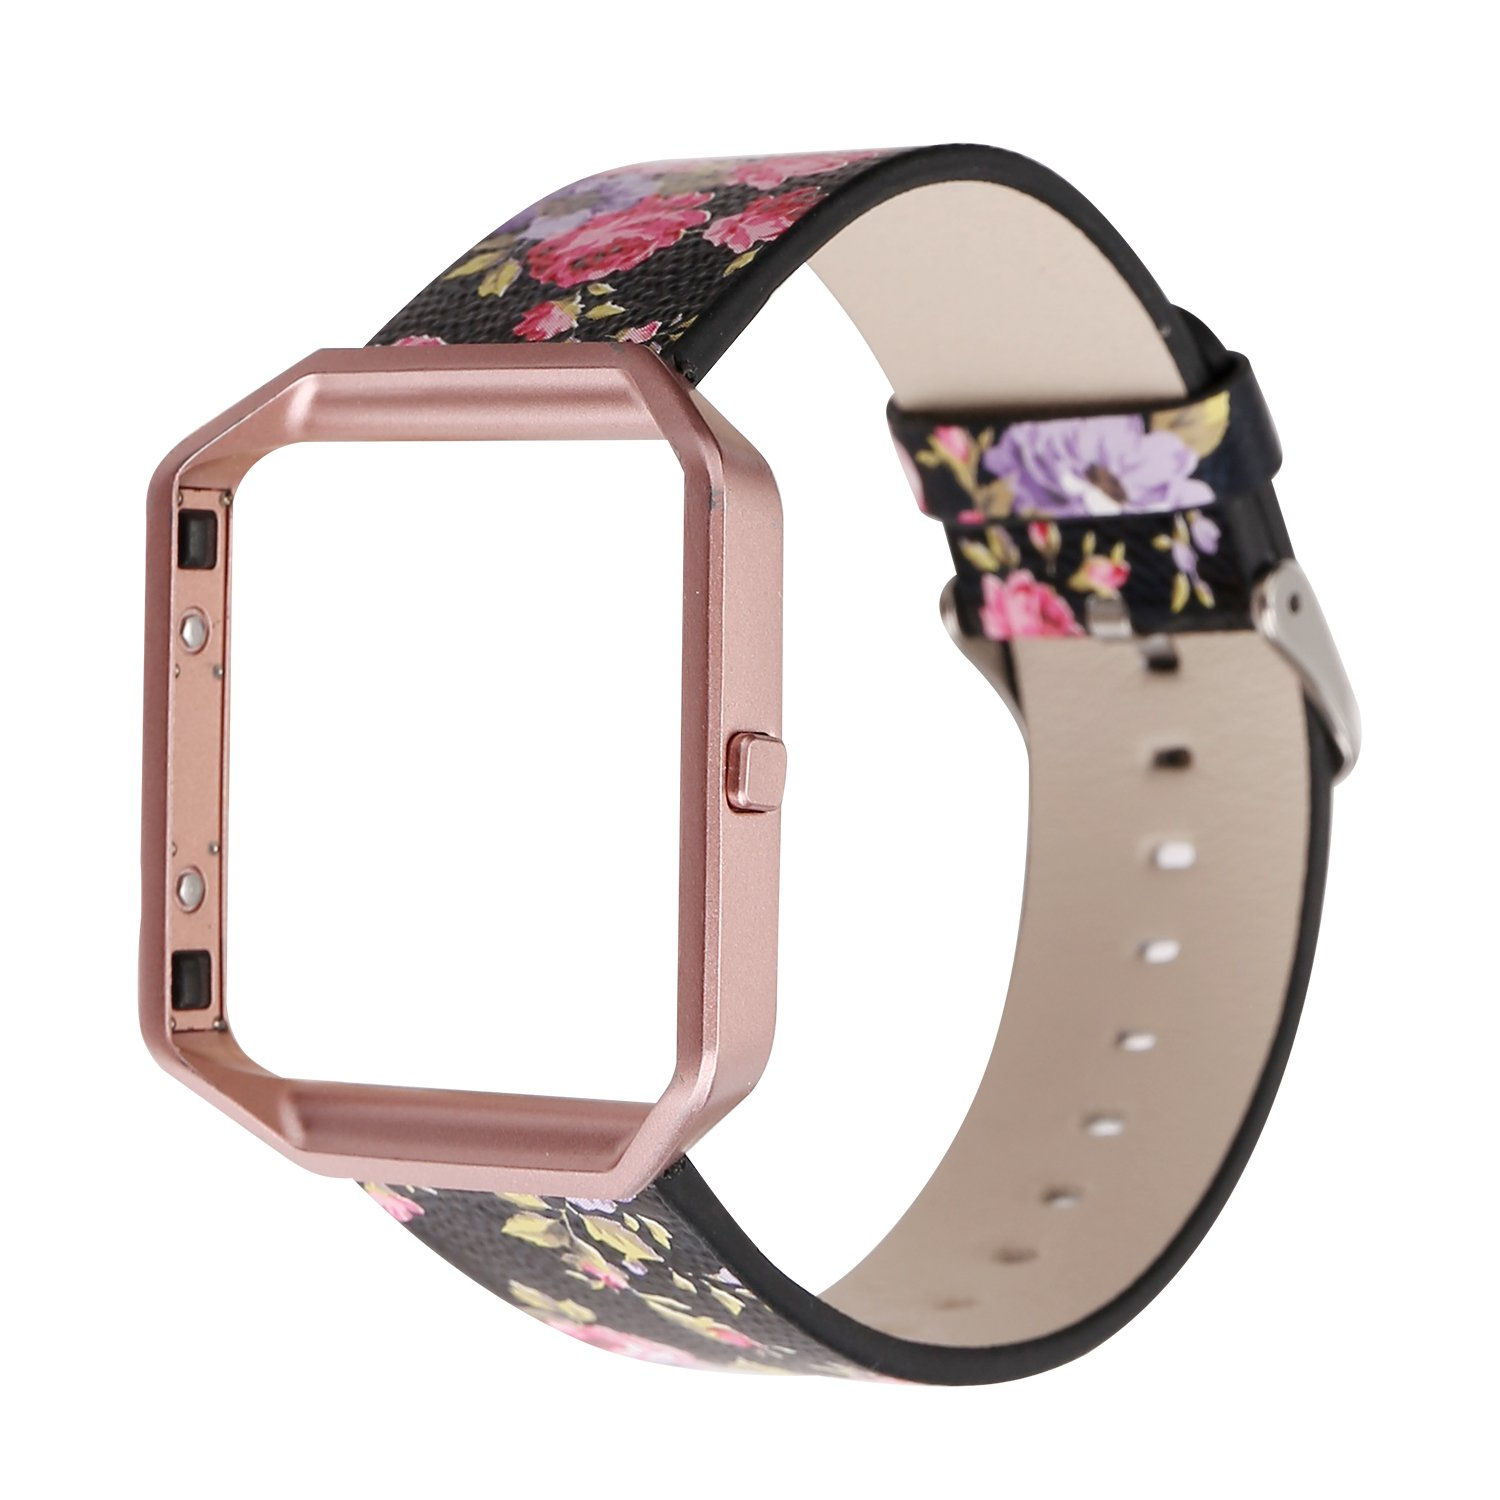 YOSWAN Replacement Band for Fitbit Blaze, Watchband Floral Soft Leather Strap Replacement Watch Band Wristband Bracelet Strap and Frame for Fitbit Blaze (Black Pink+ Rose Pink Frame)